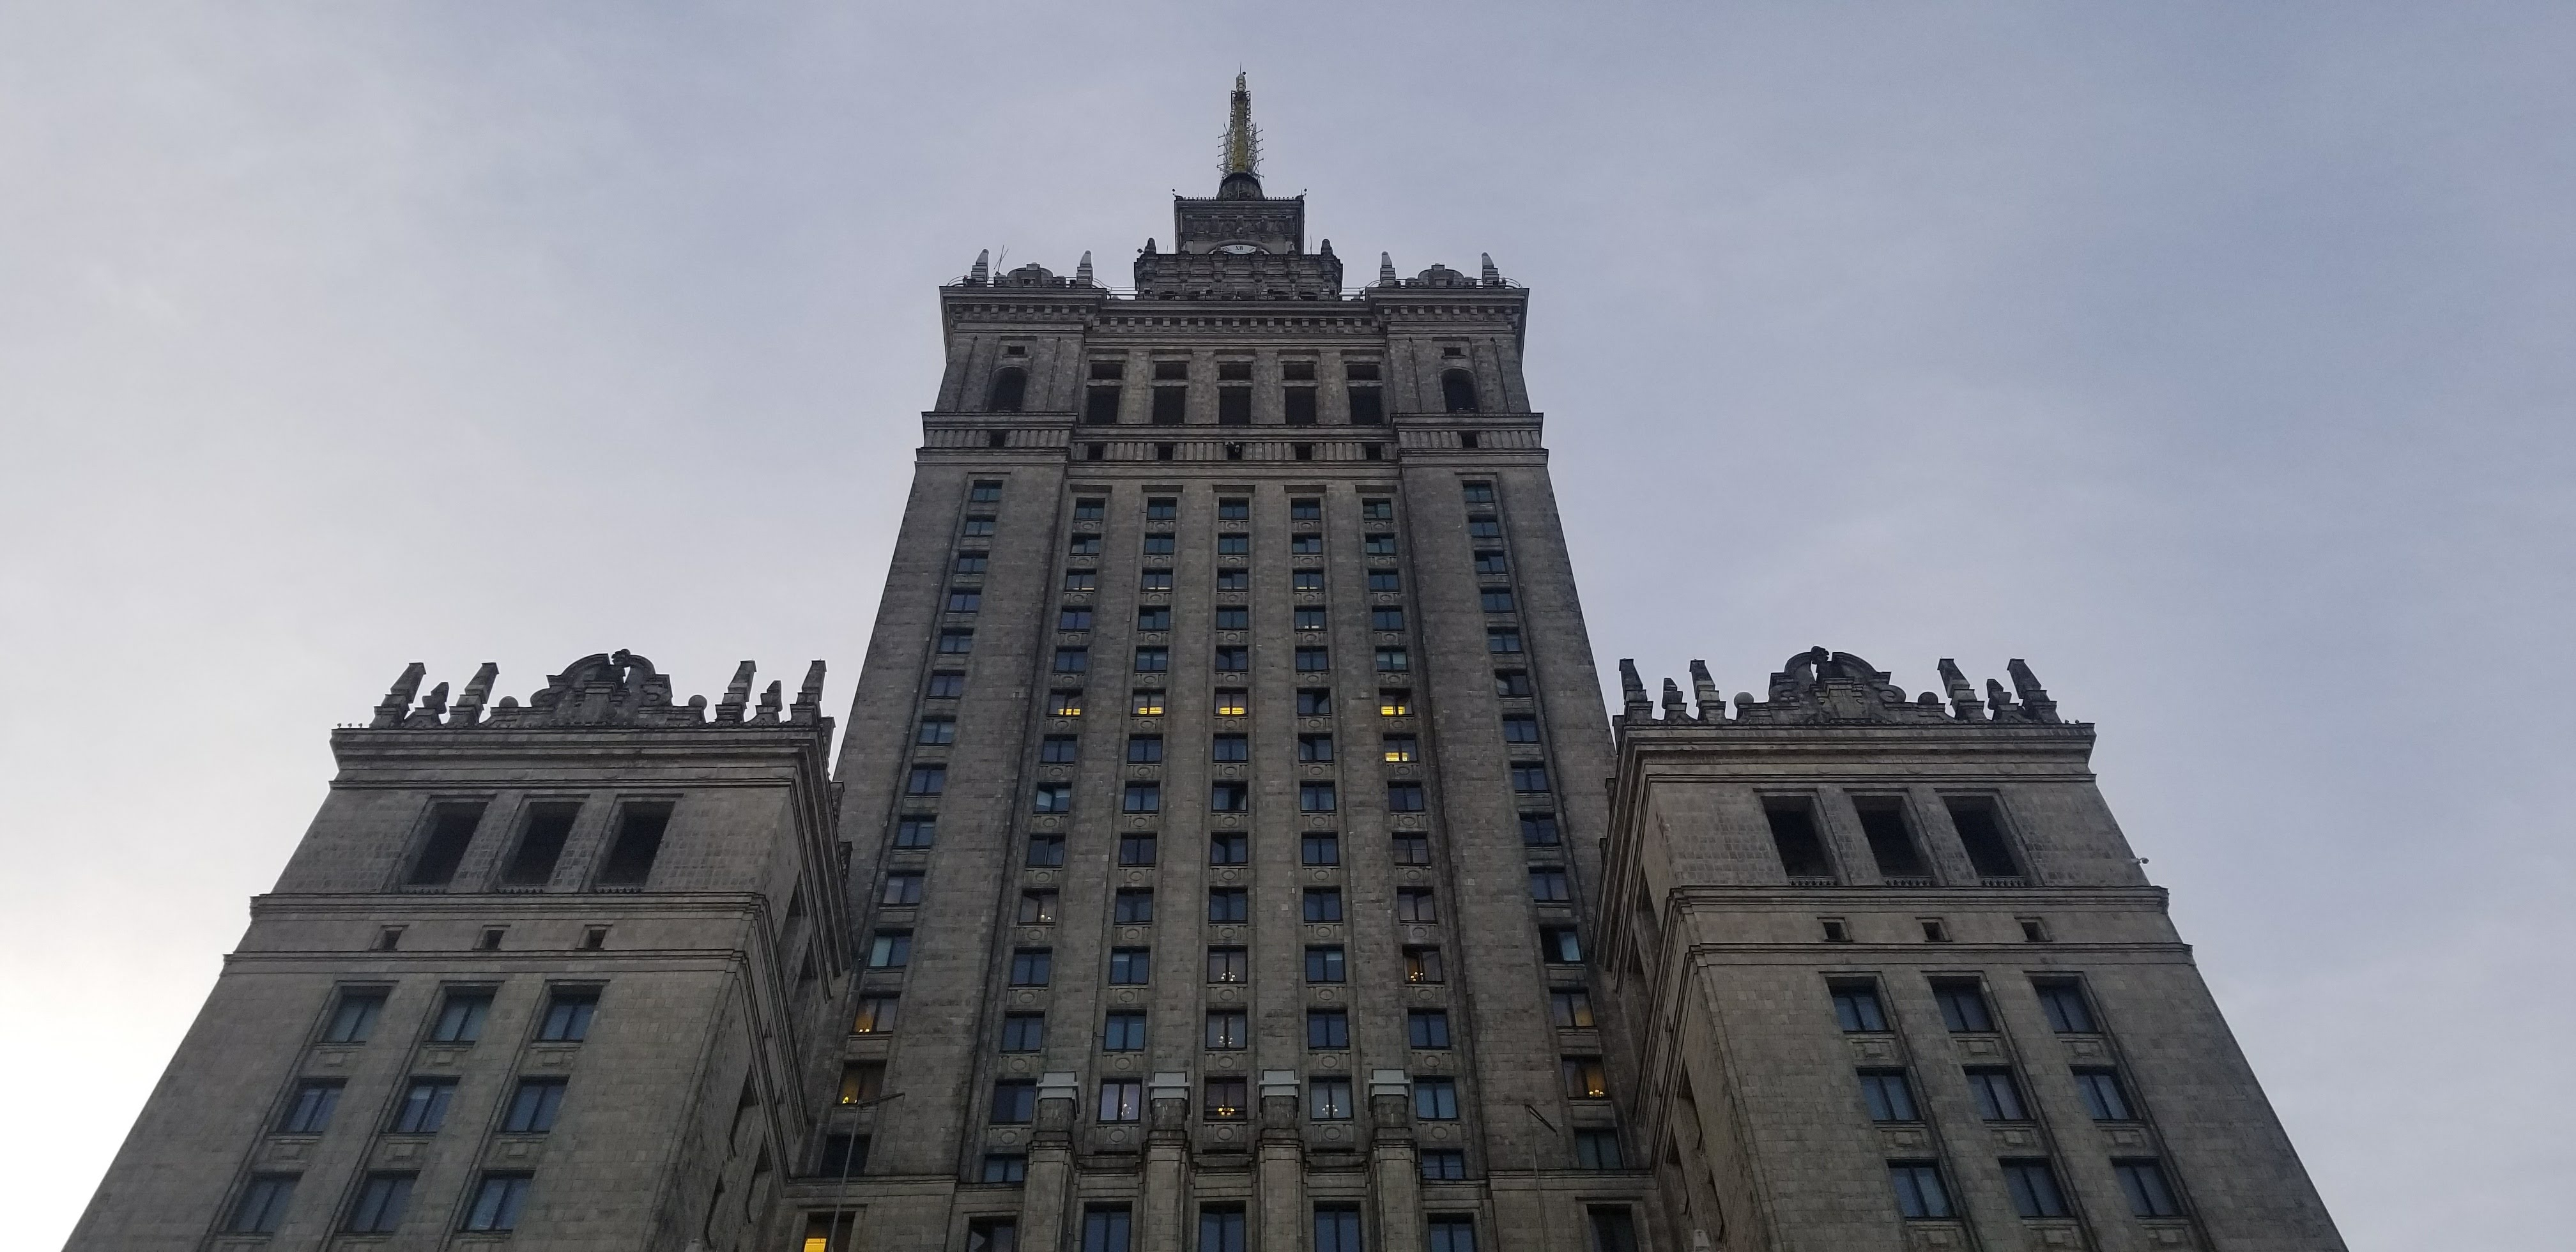 CAPAStudyAbroad_London_Fall2017_From Thaddeus Kaszuba - The Palace of Culture and Science in downtown Warsaw, Poland.jpg